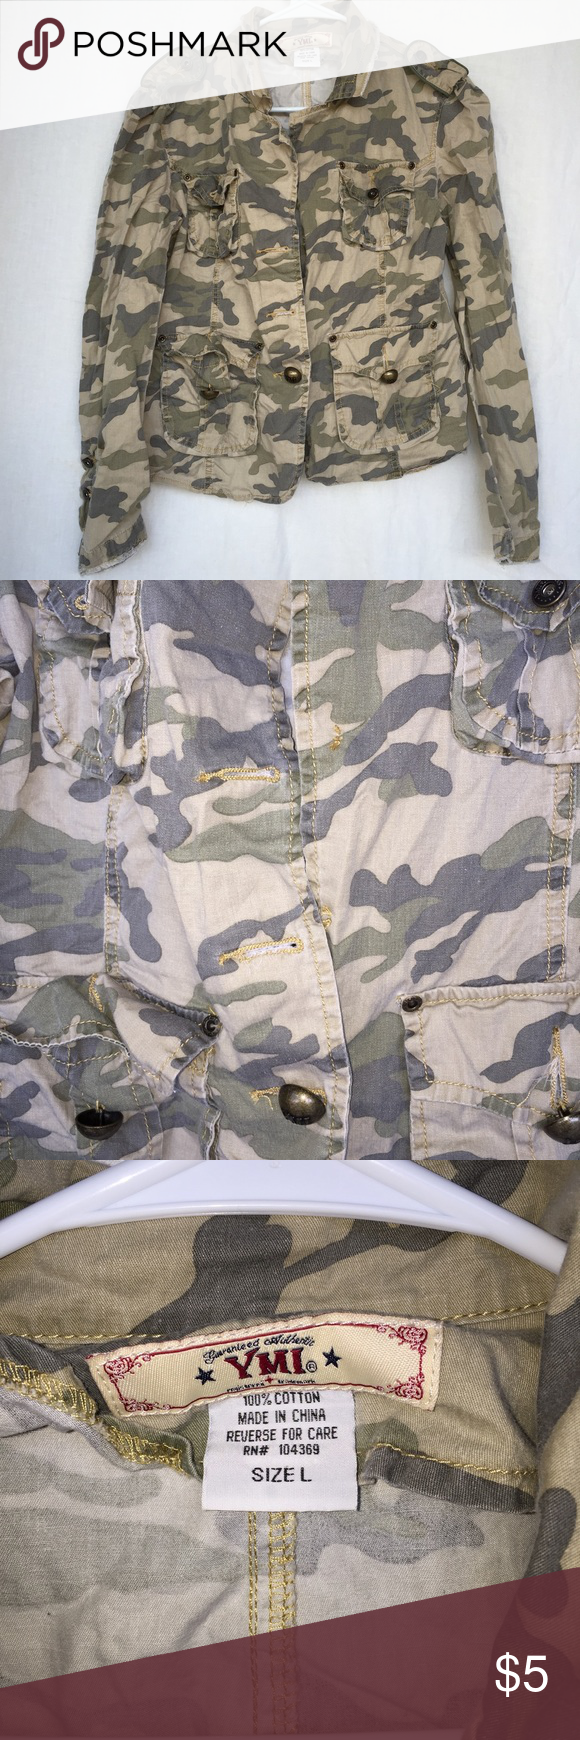 YMI Camo Jacket Missing 2 buttons on front YMI Jackets & Coats